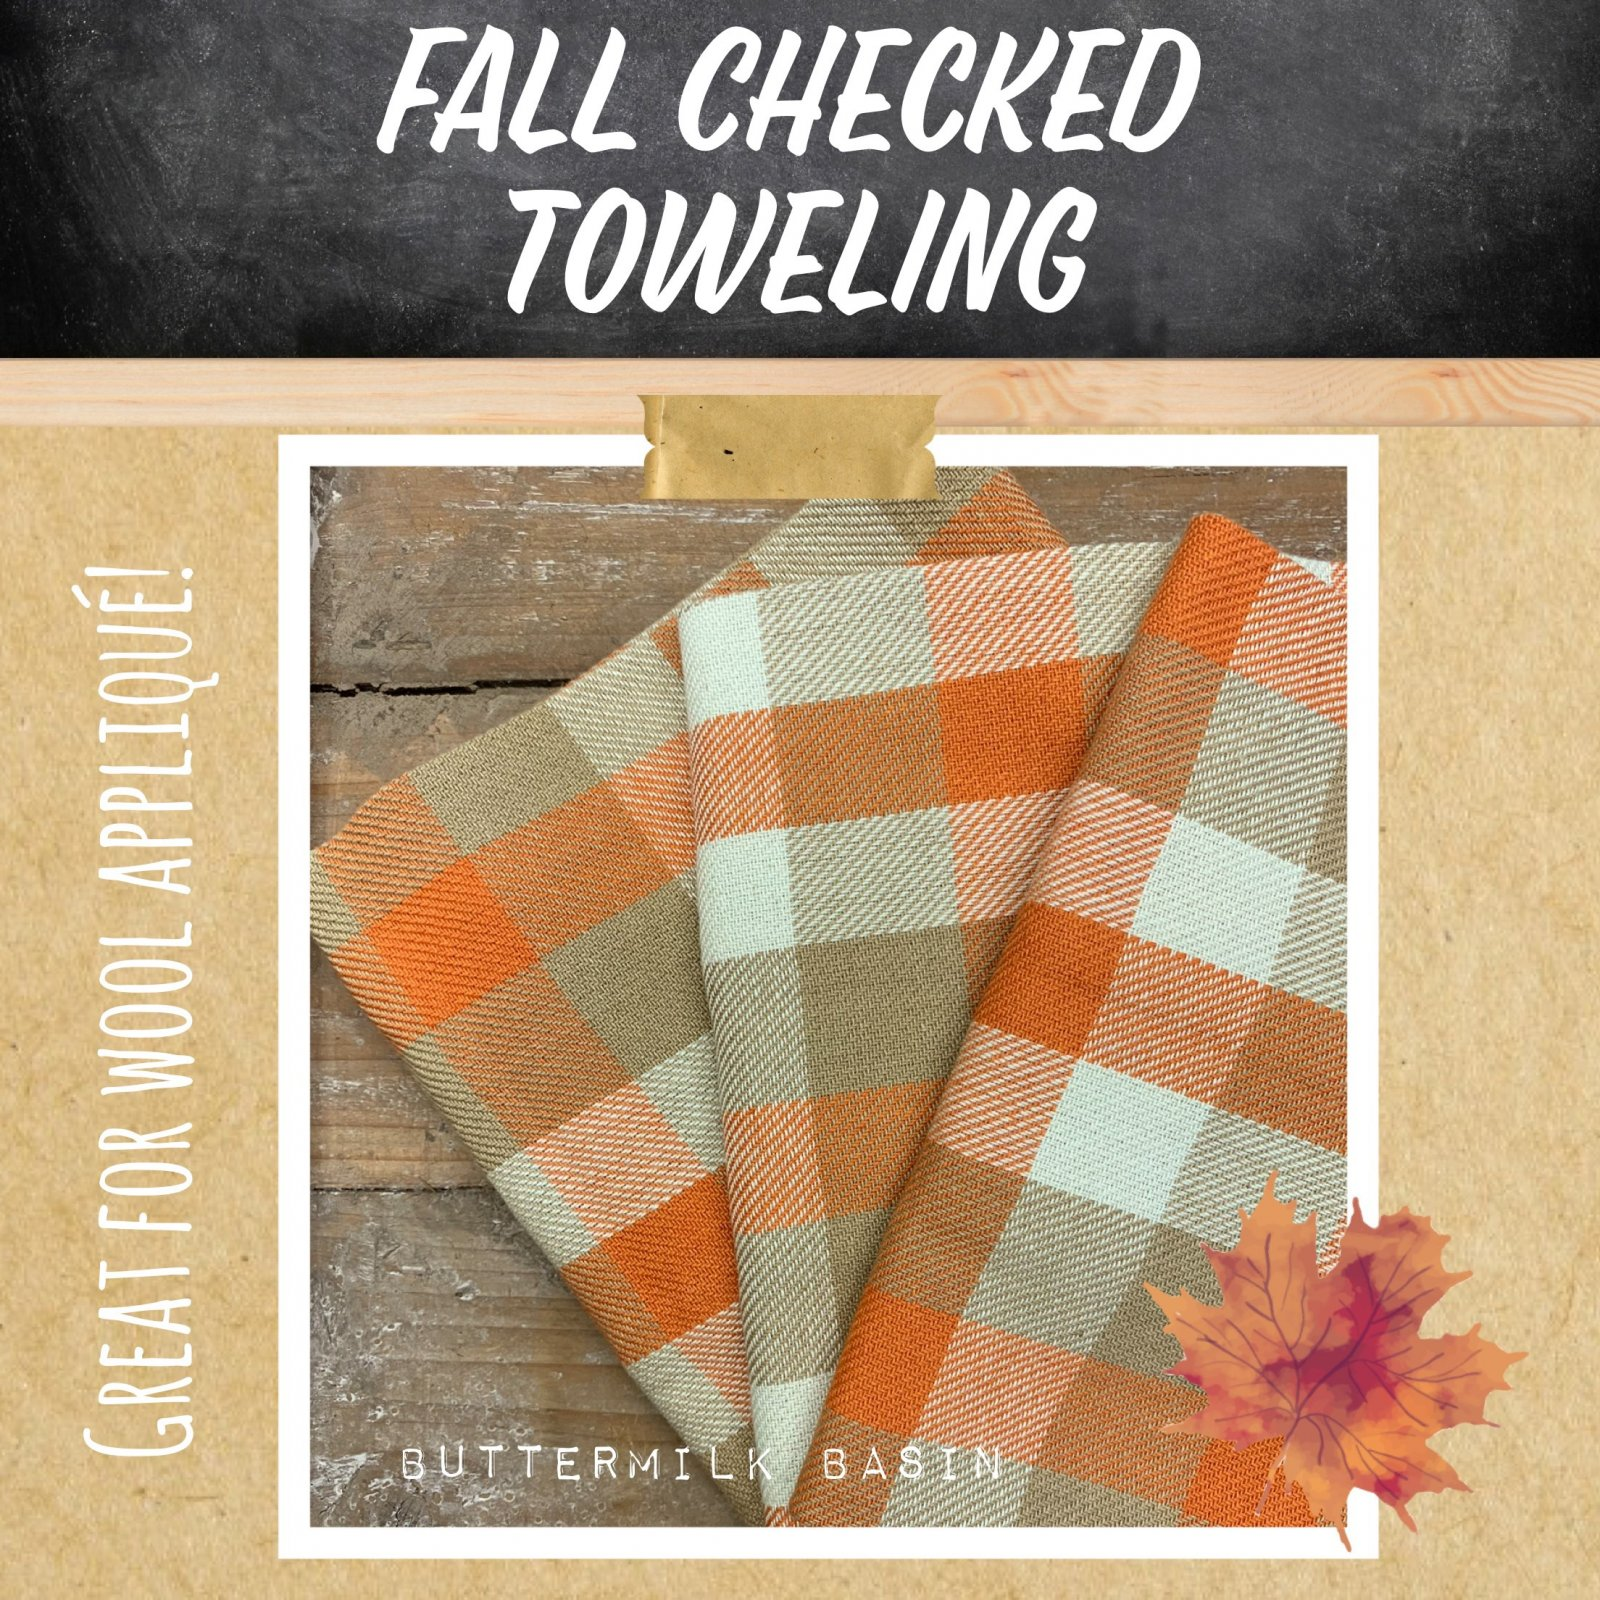 Fall Checked Toweling